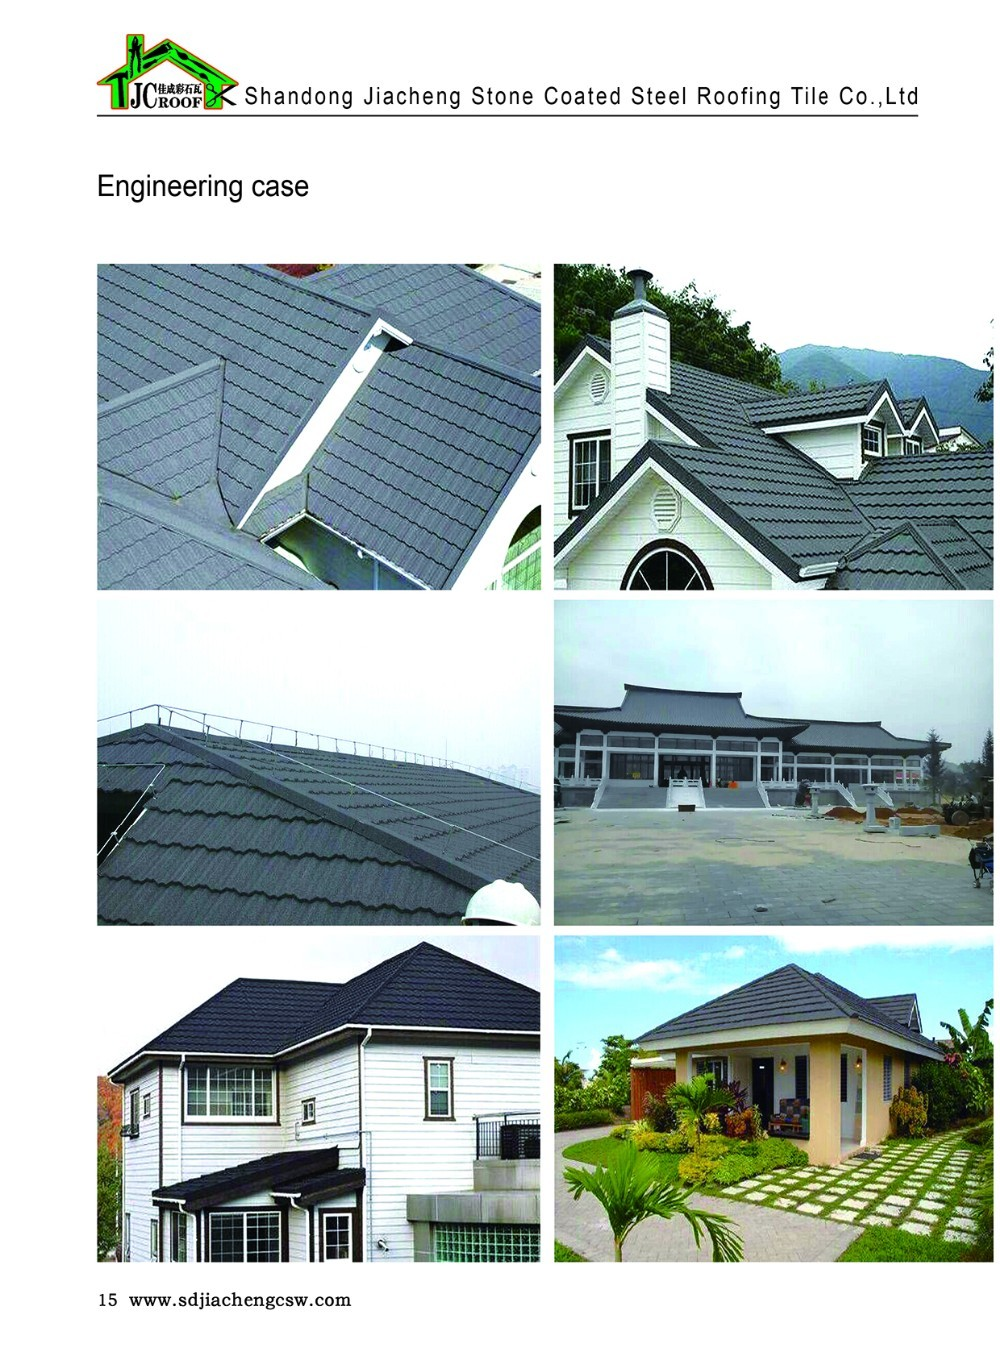 Korea Roofing Tiles Quality,Stone Coated Steel Roofing Tiles